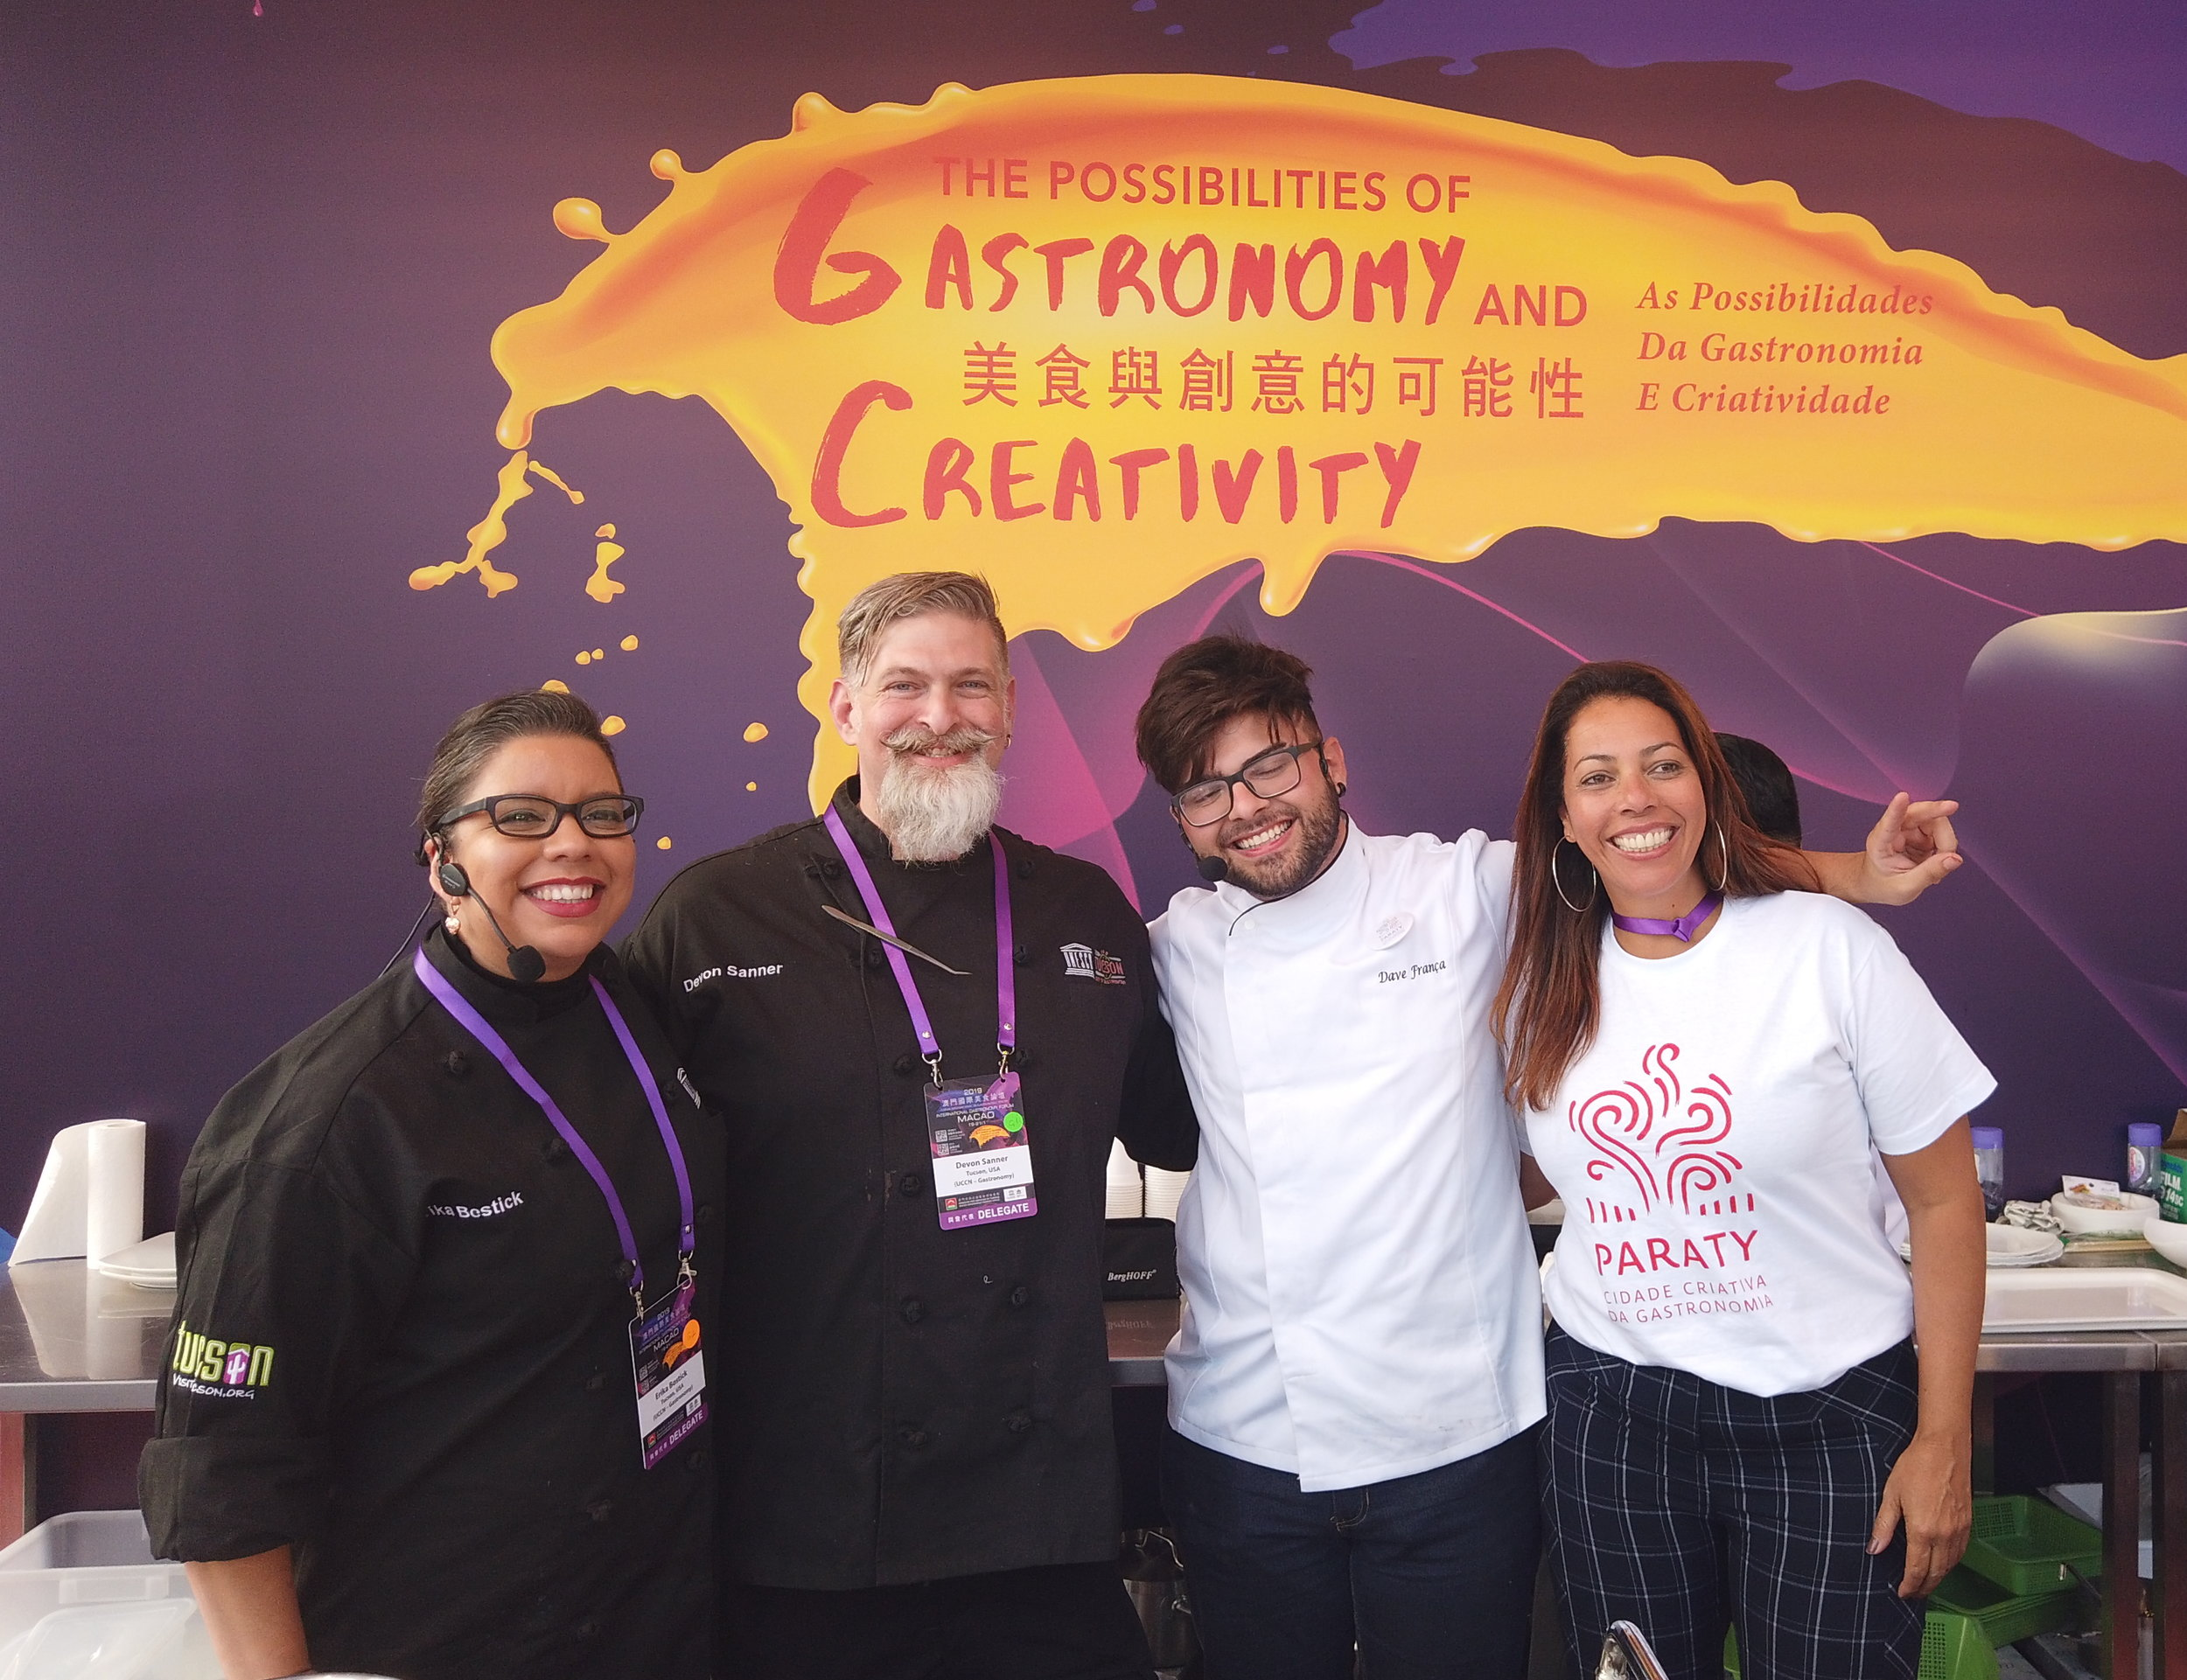 Chef Erika Bostik and Chef Devon Sanner with the Paraty, Brazil Delegation in Macau, China